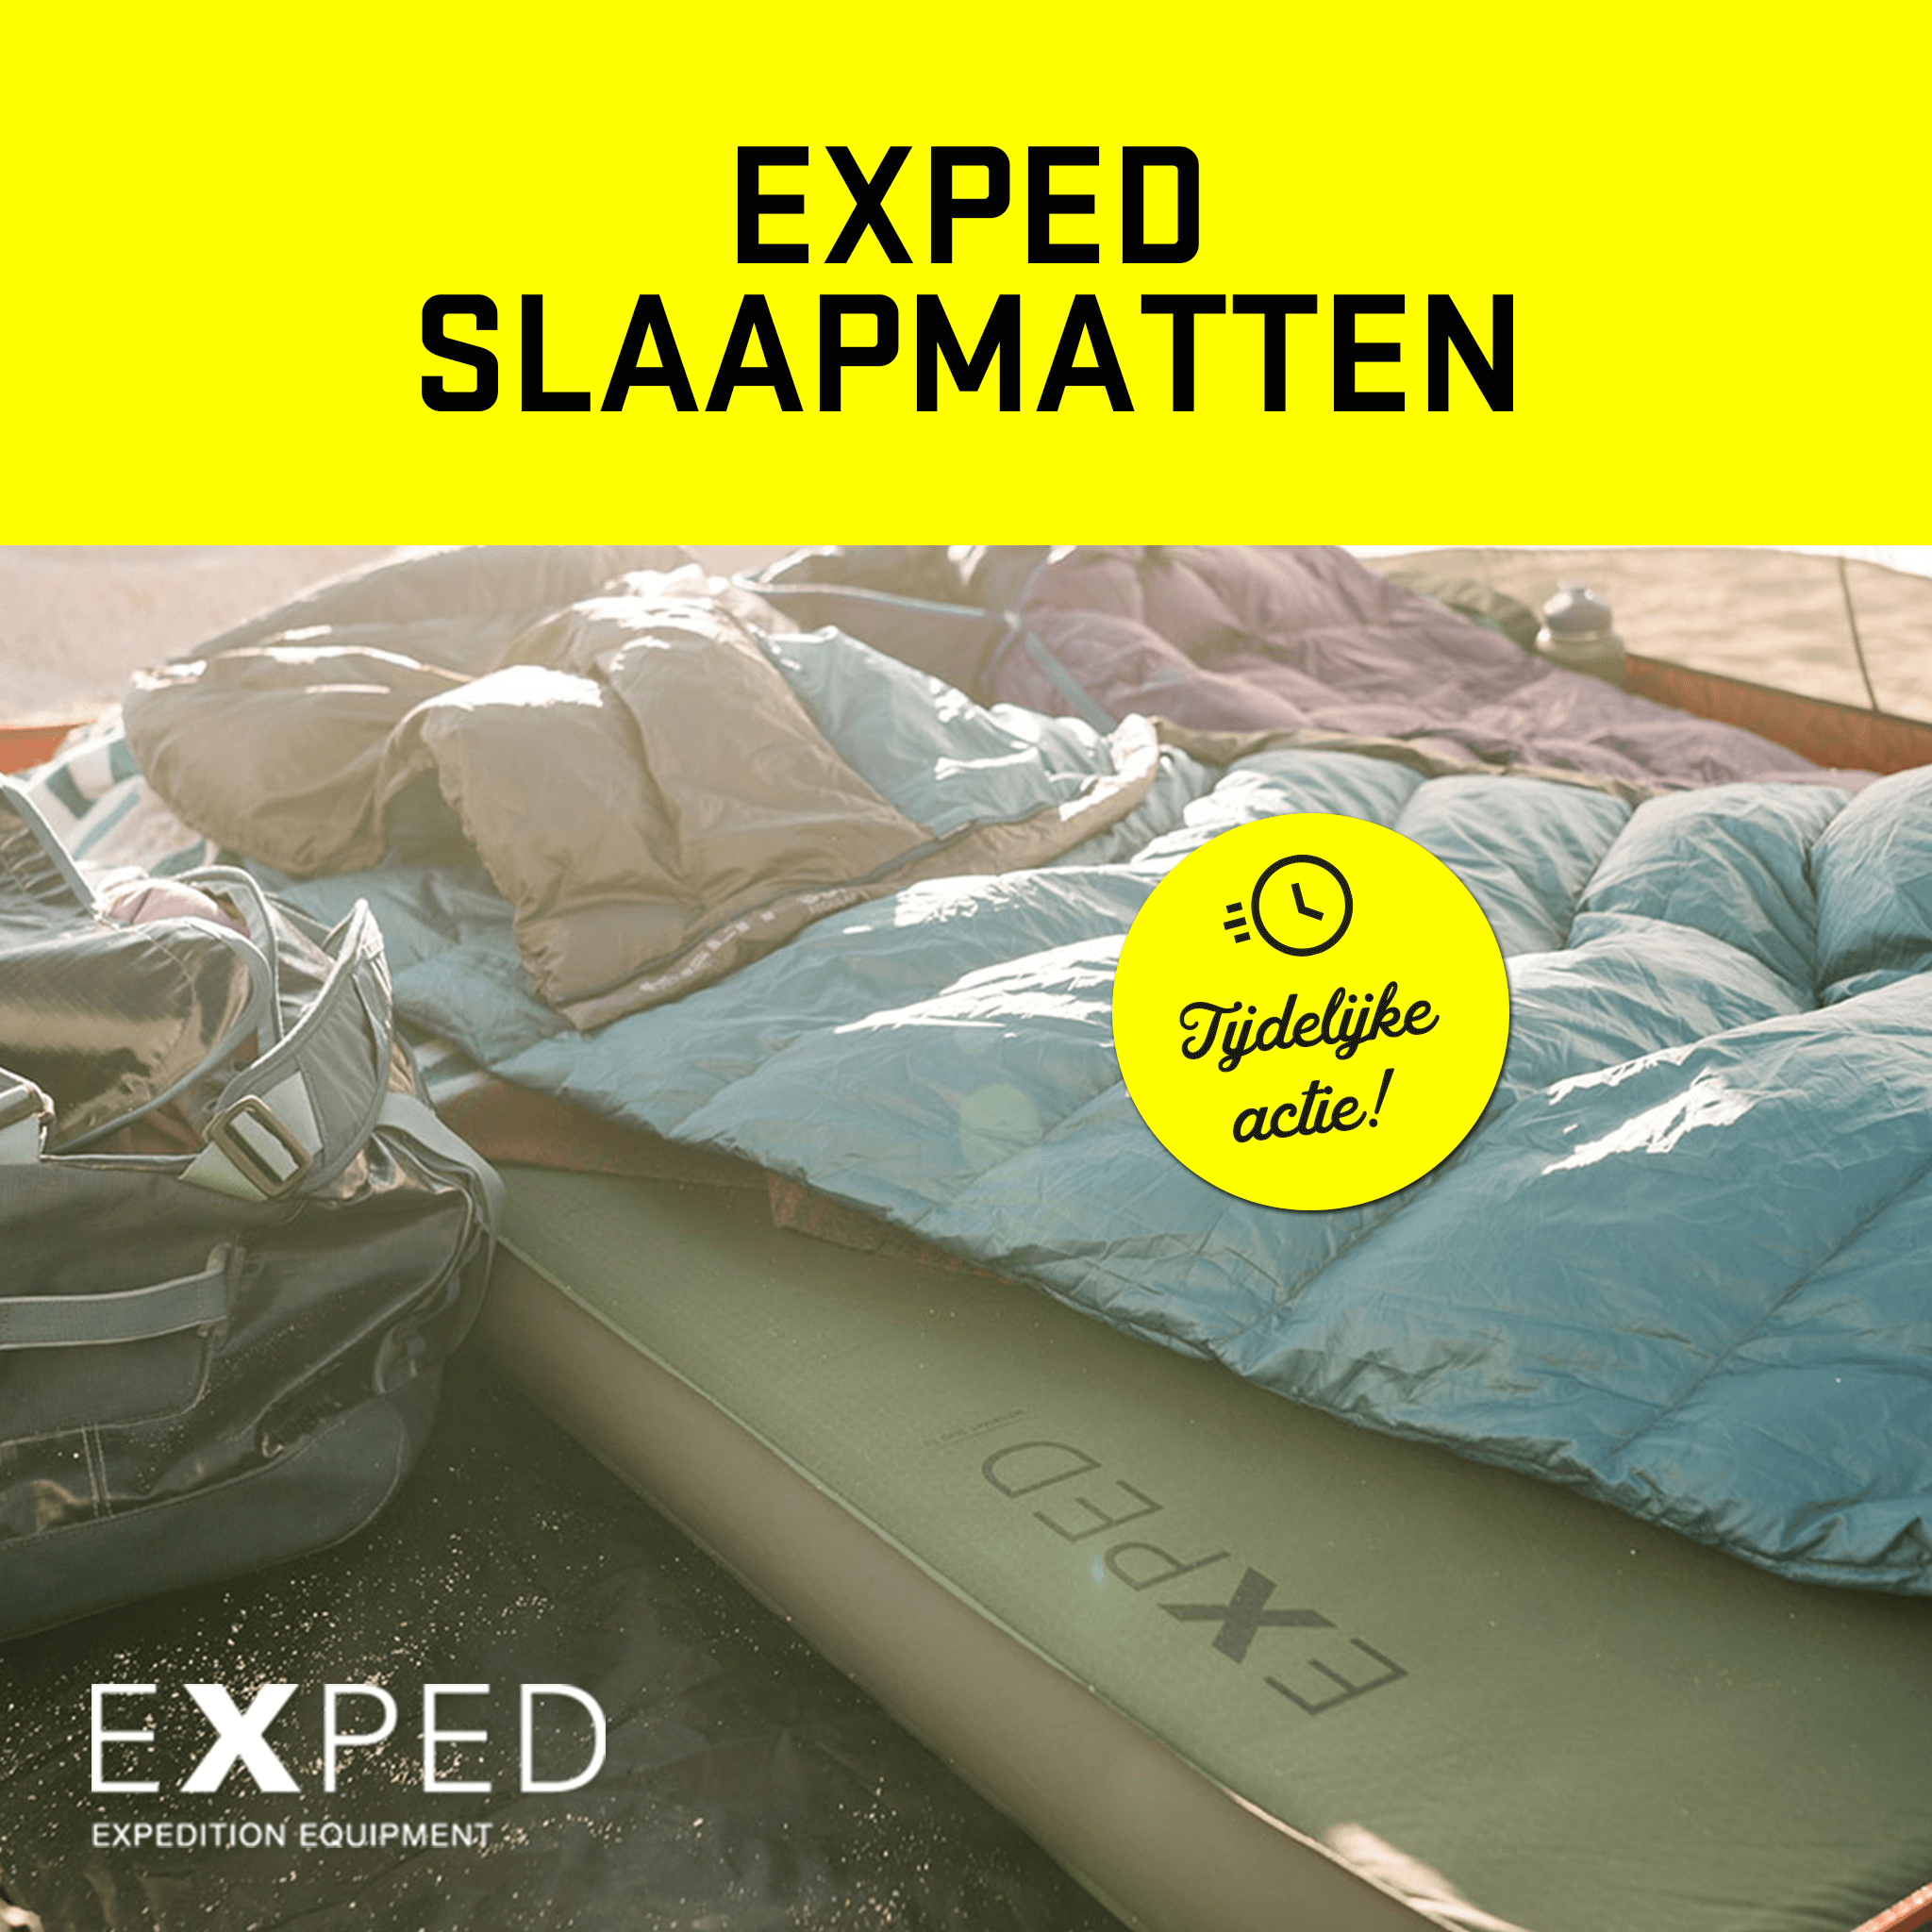 Exped Slaapmatten